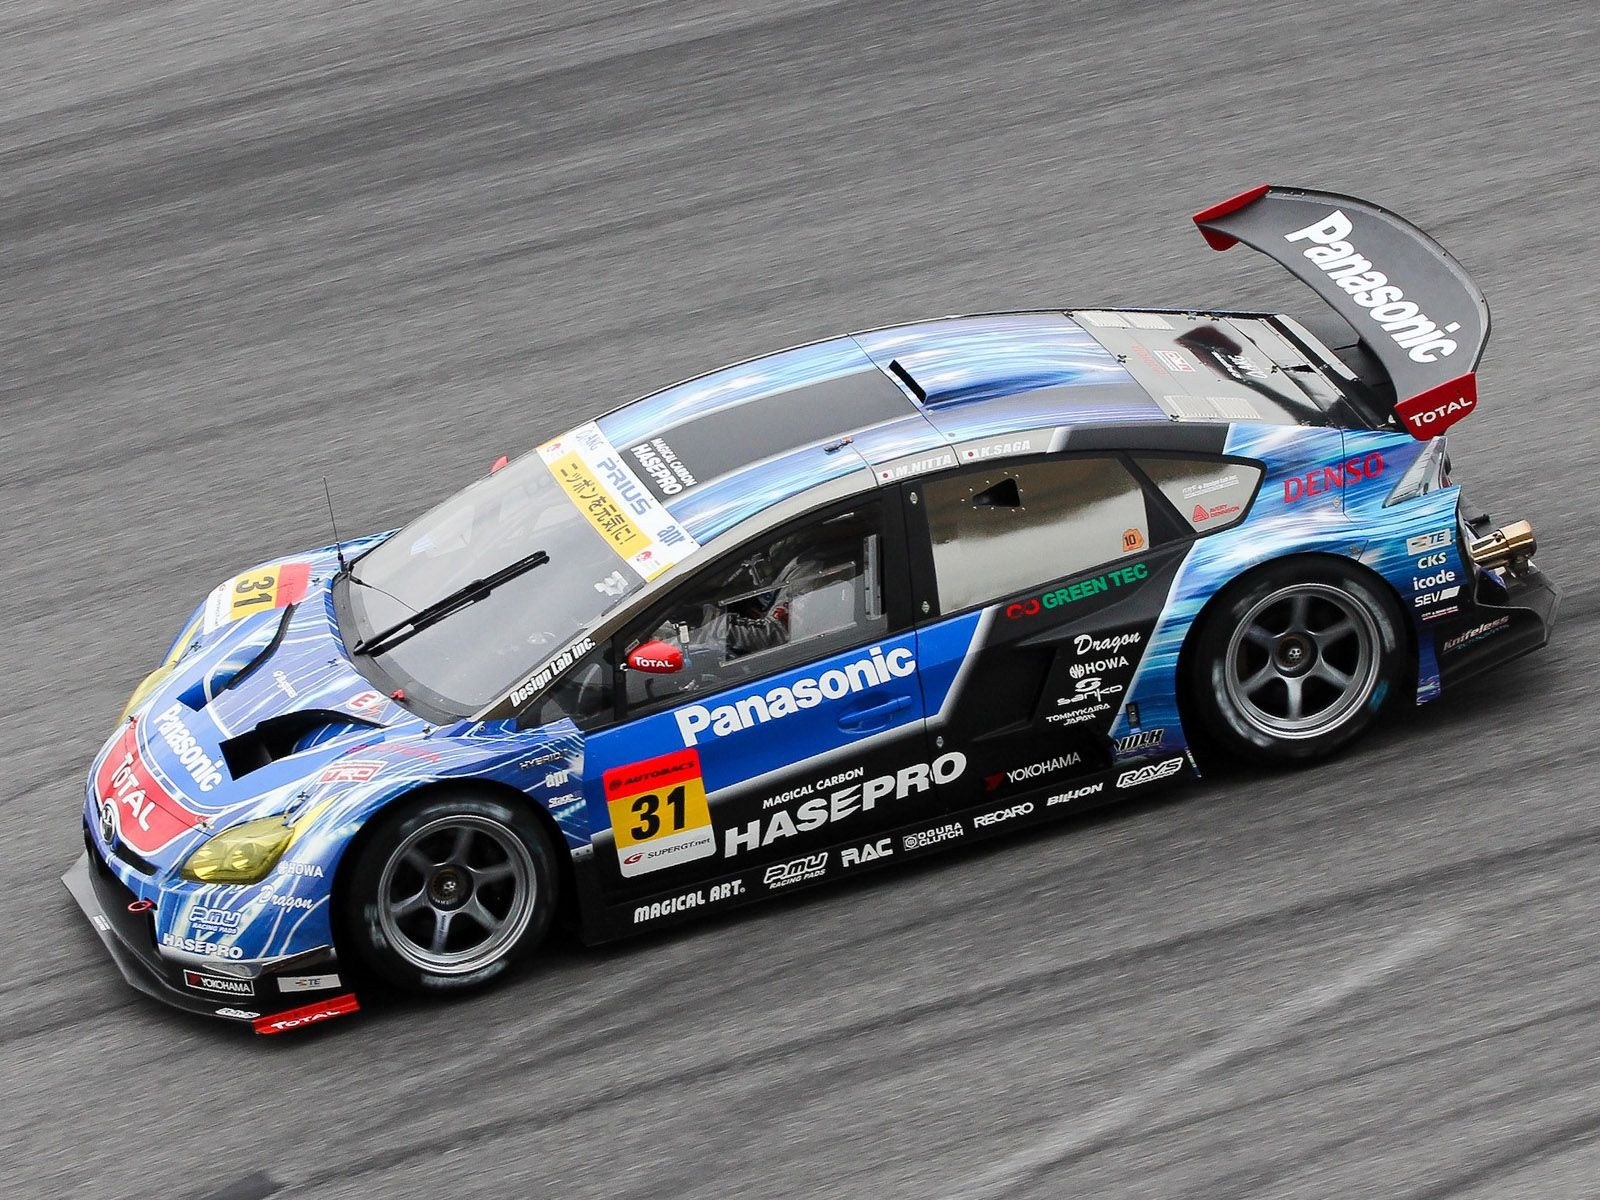 Image result for Prius Racing